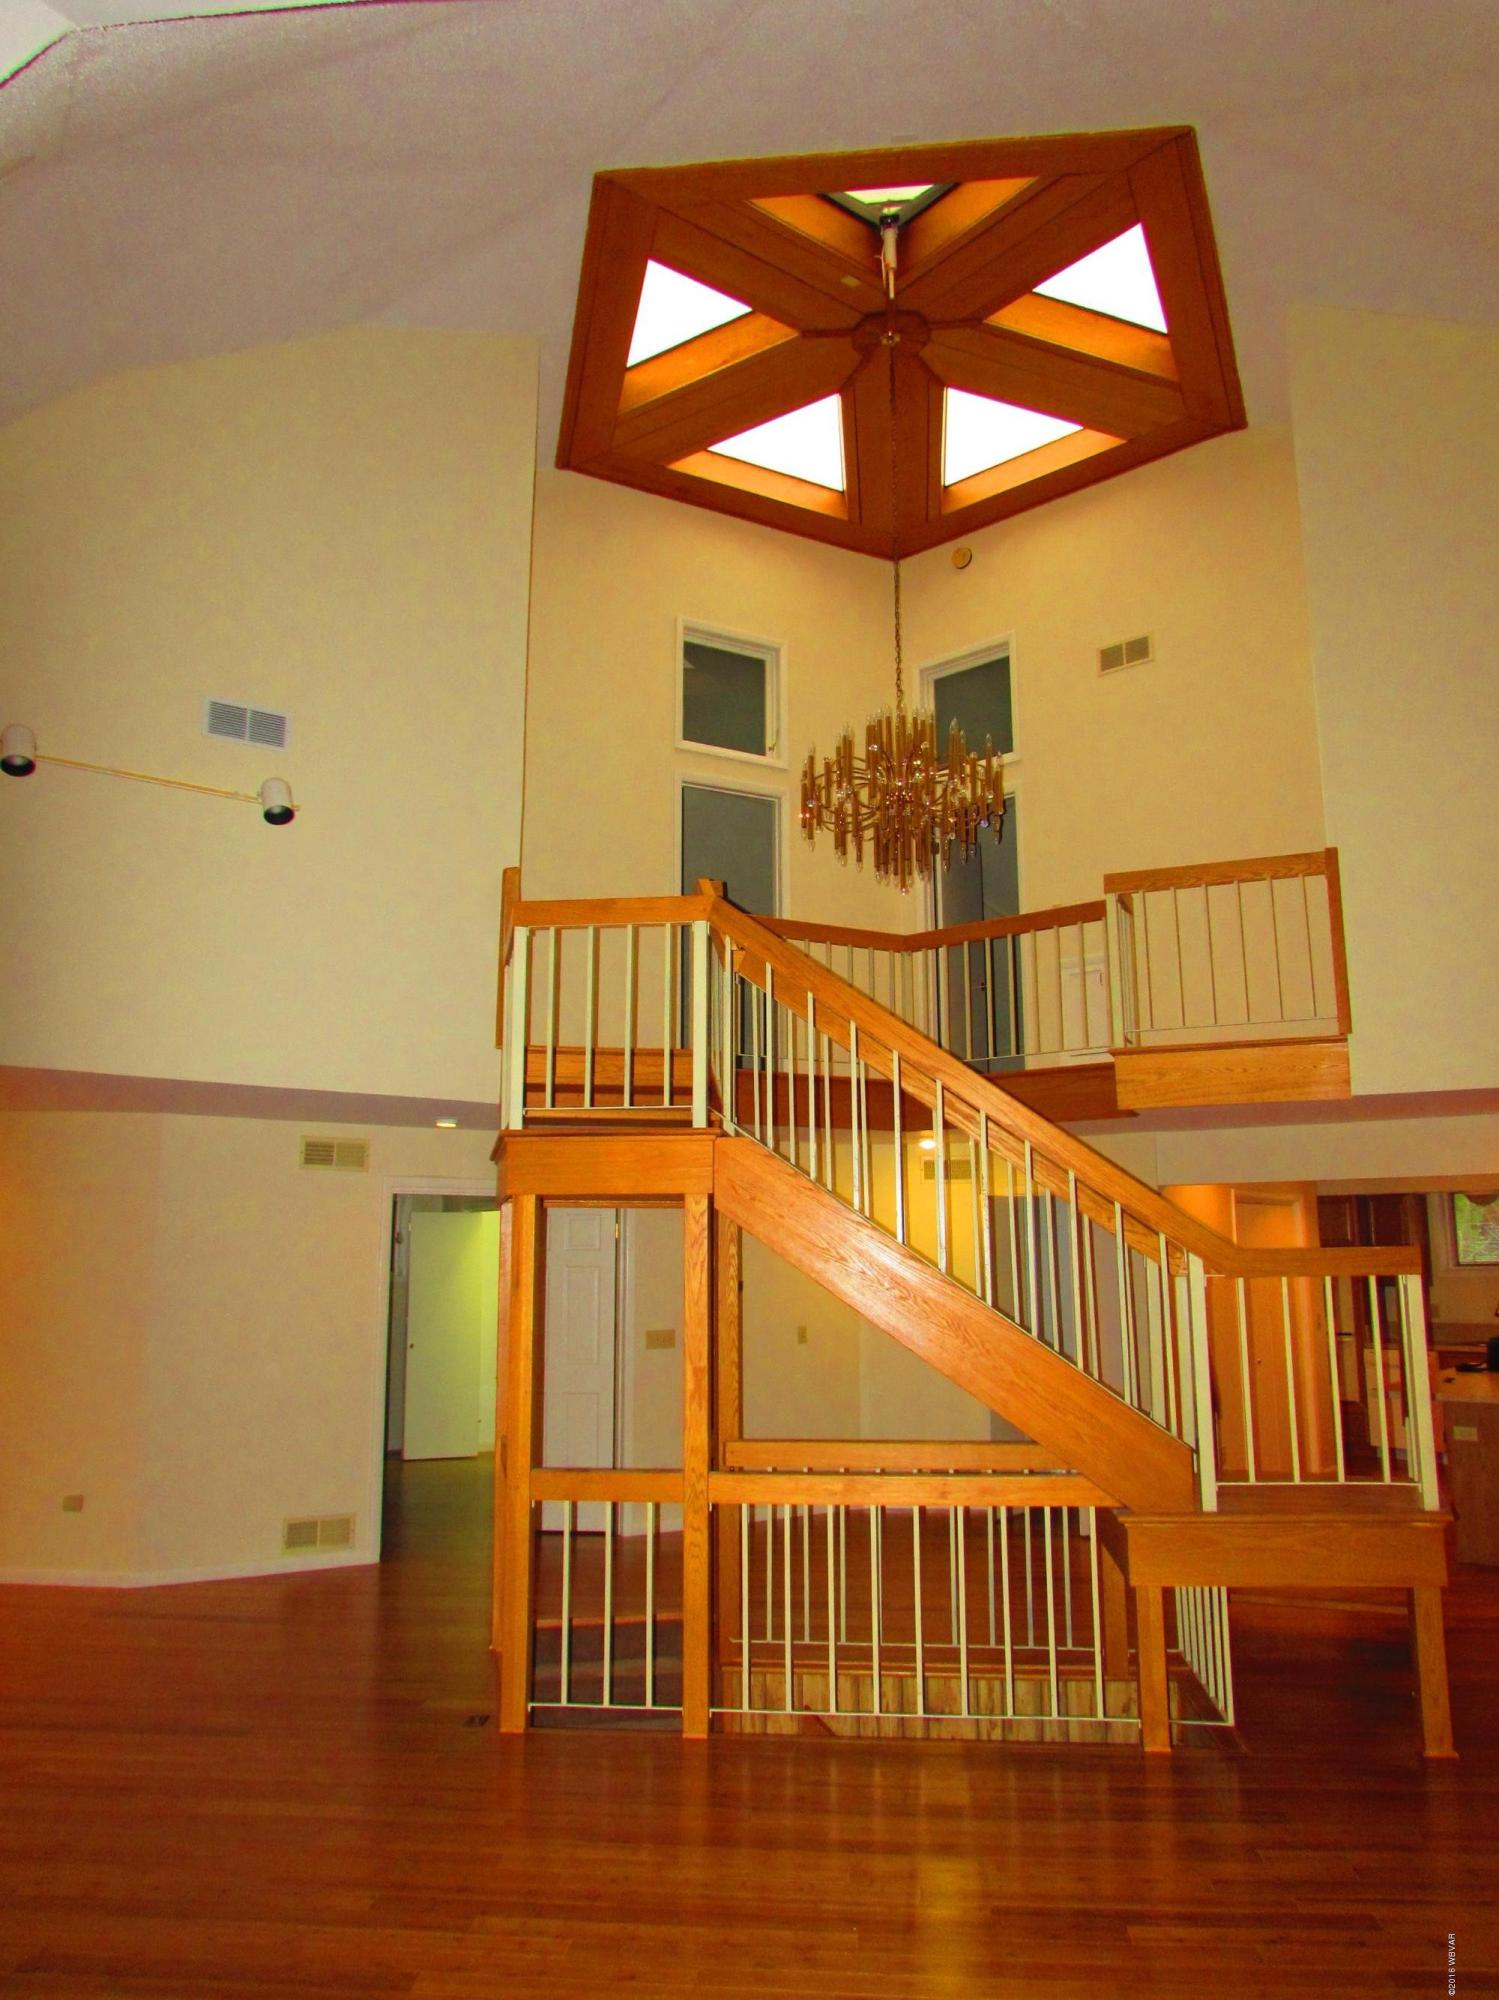 296 RICHNER HOLLOW ROAD, Howard, PA 16841, 4 Bedrooms Bedrooms, ,3.5 BathroomsBathrooms,Residential,For sale,RICHNER HOLLOW,WB-79353